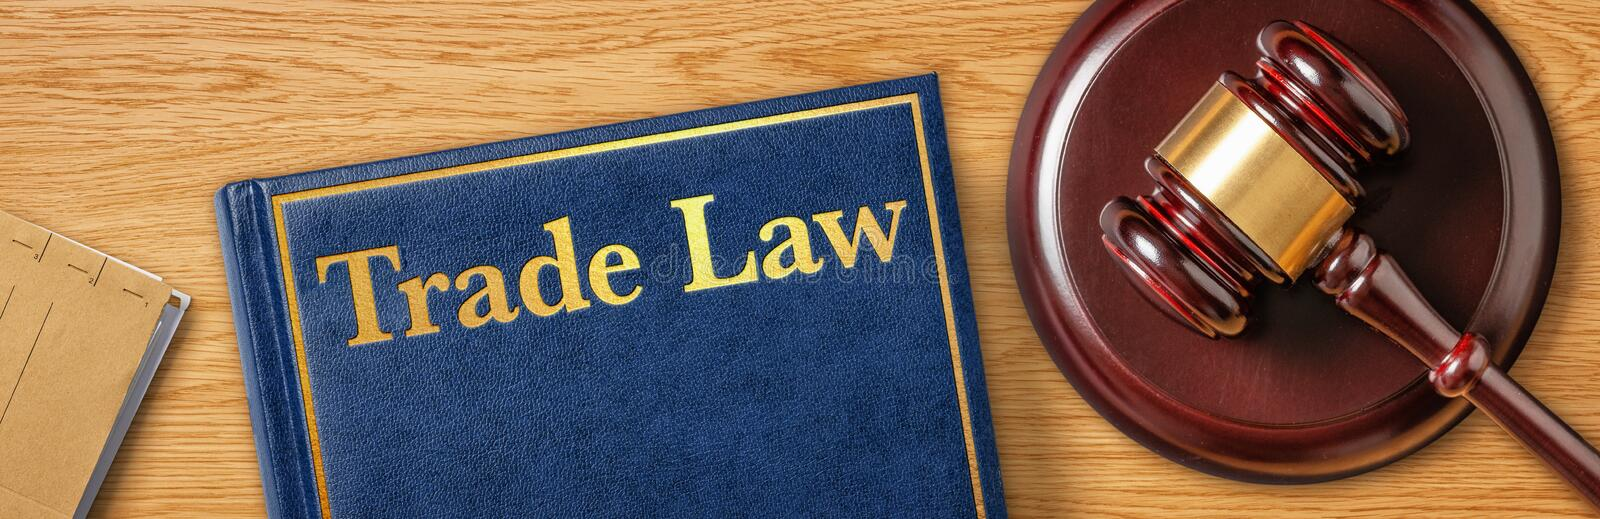 A gavel with a law book - Trade Law stock image